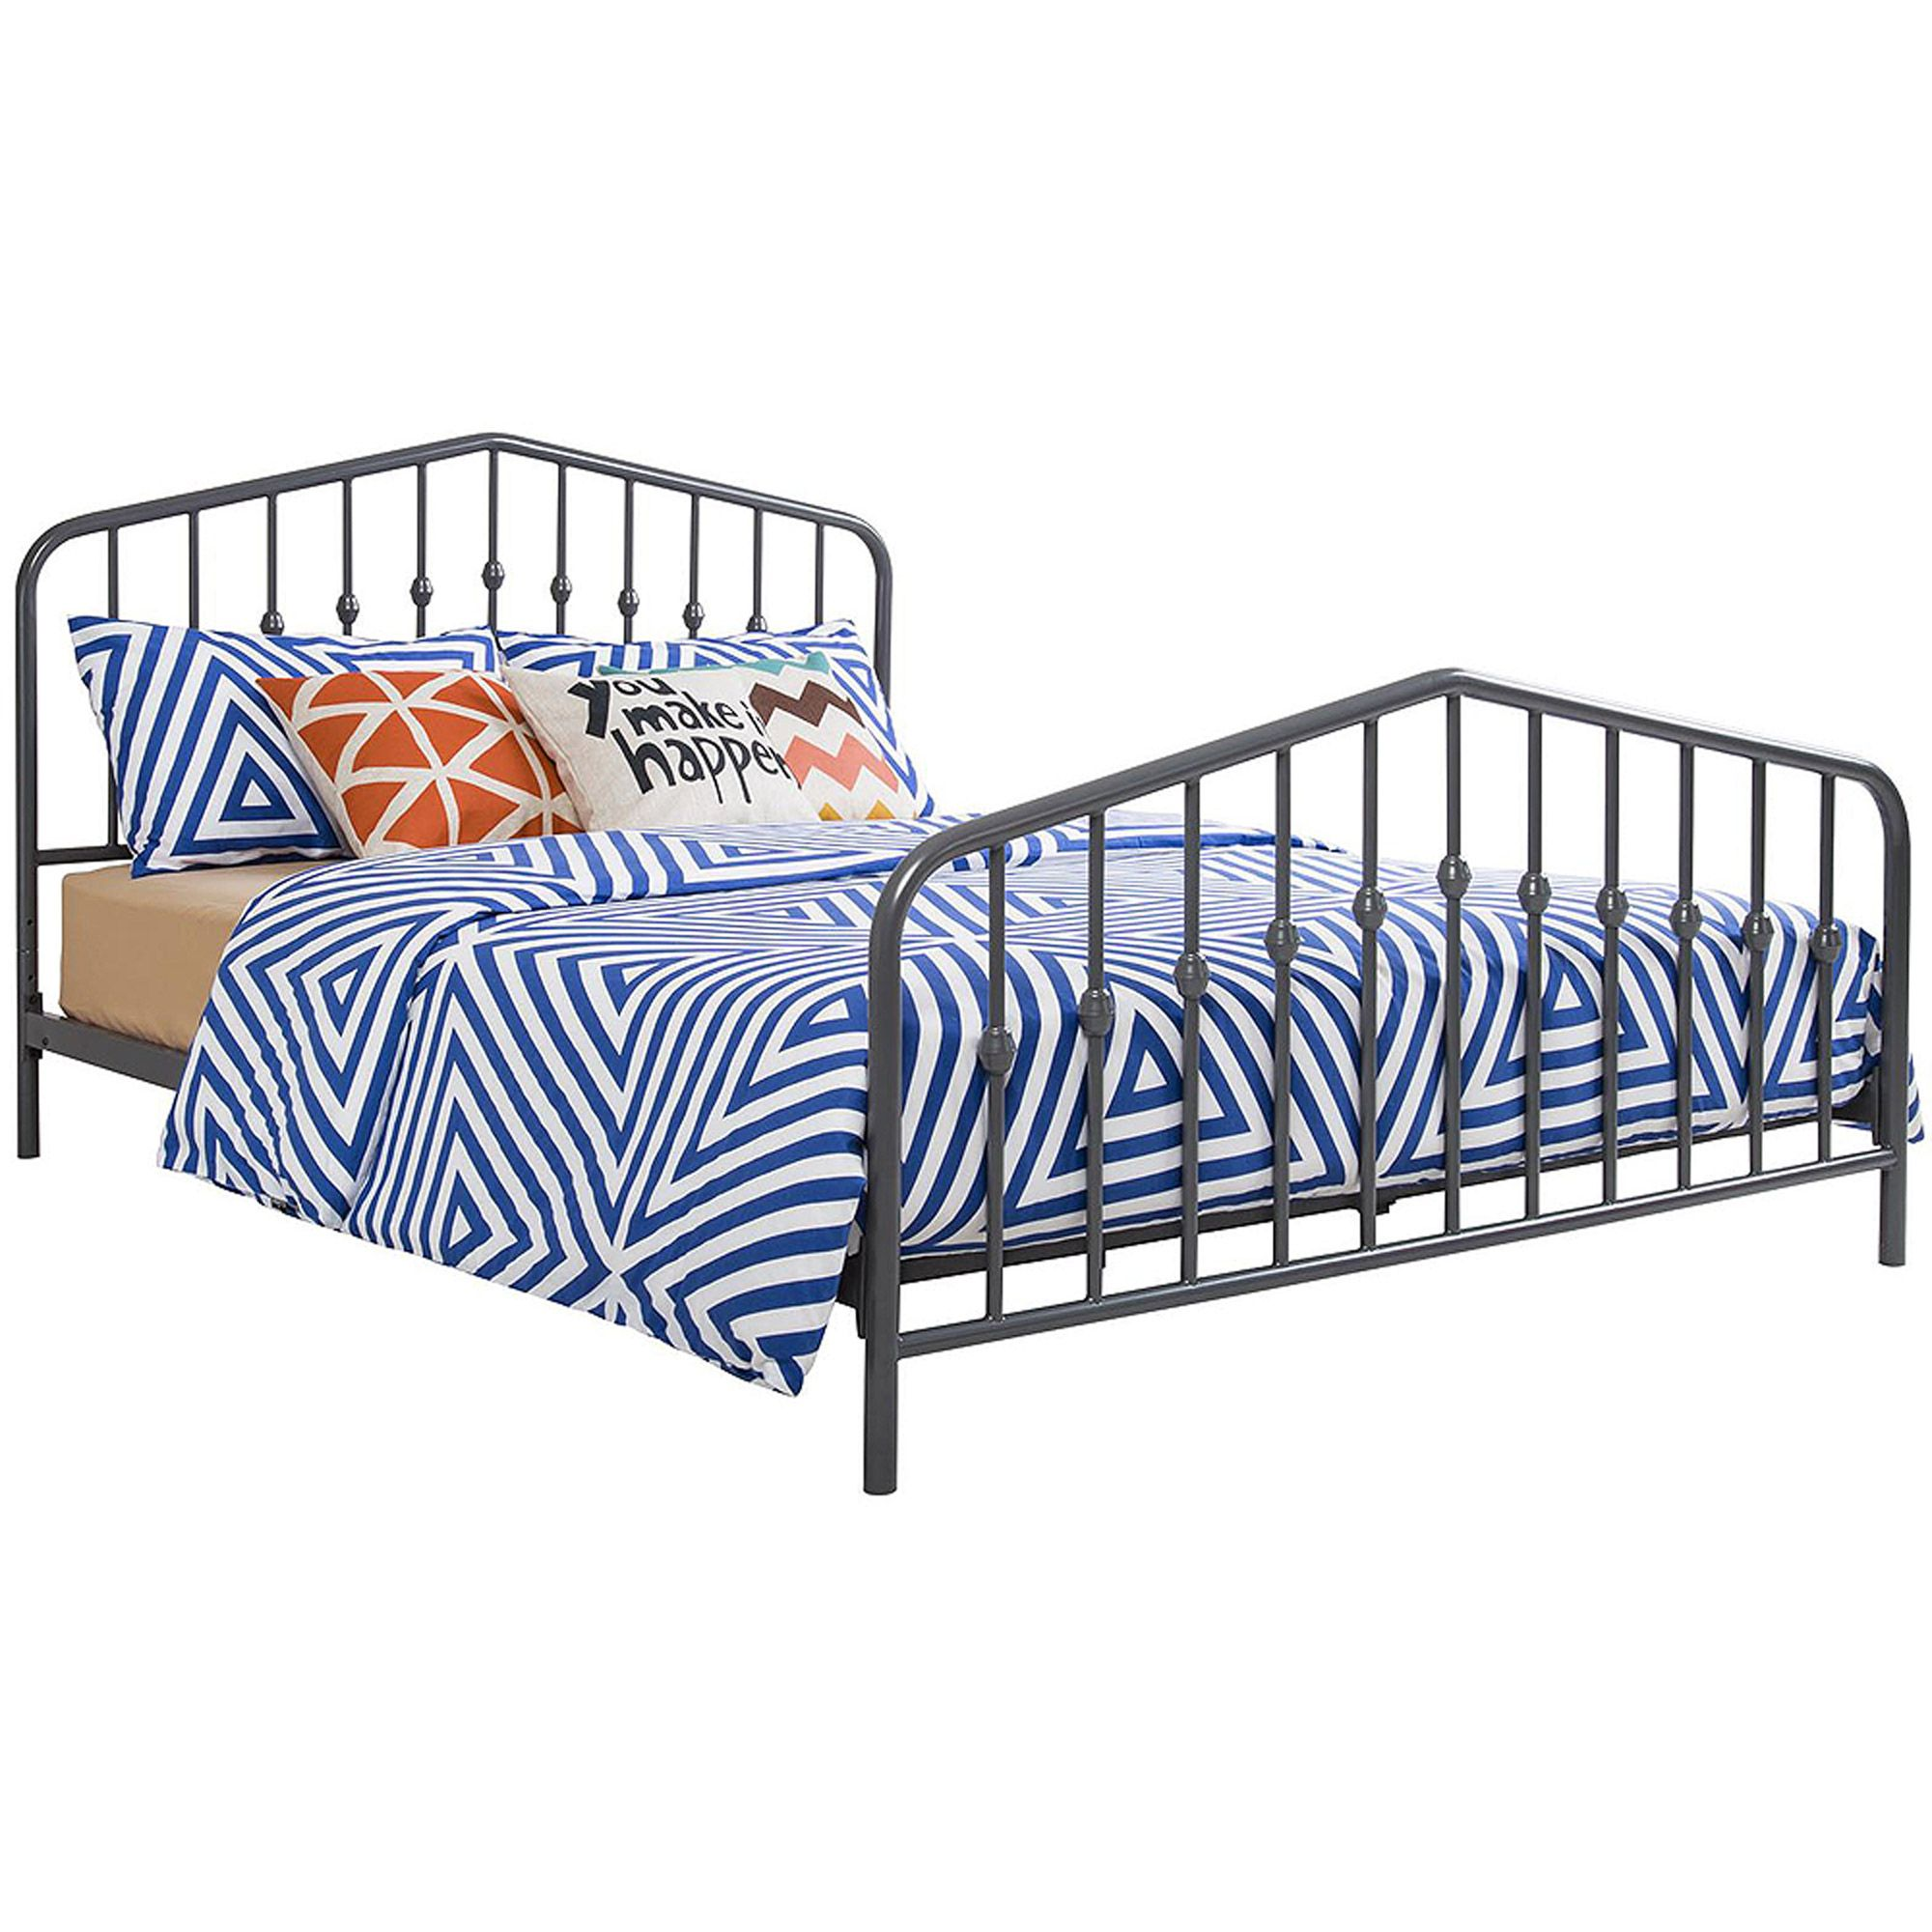 Buy 9 by Novogratz Bushwick Queen Metal Bed, Gunmetal Gray